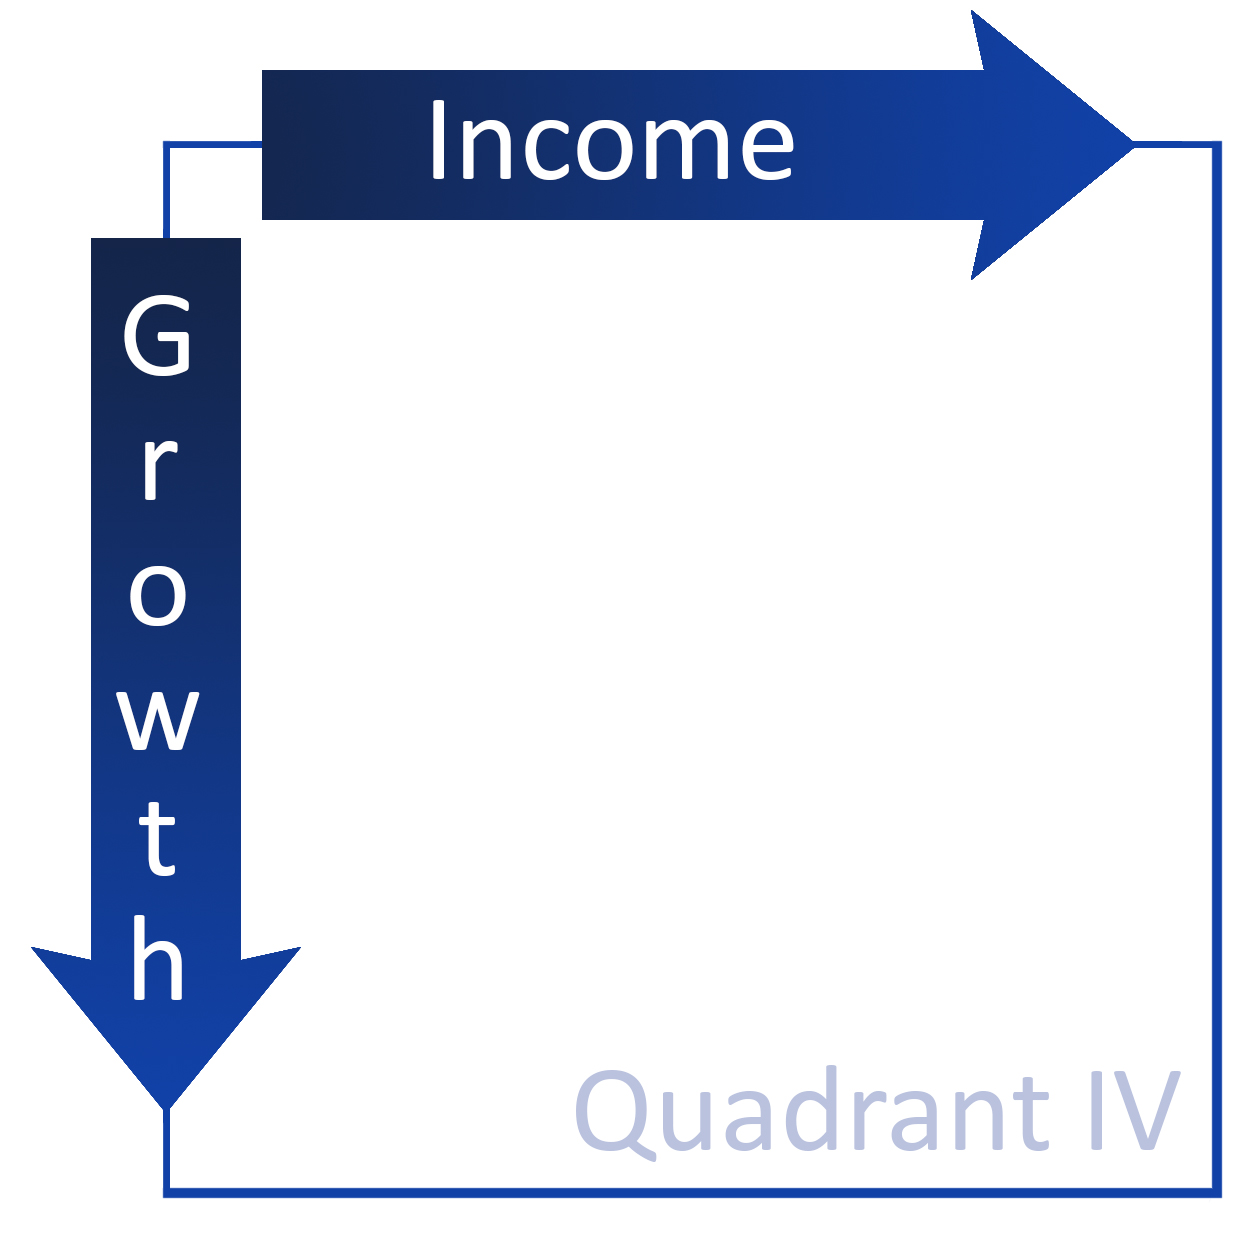 CORE Quadrant 4